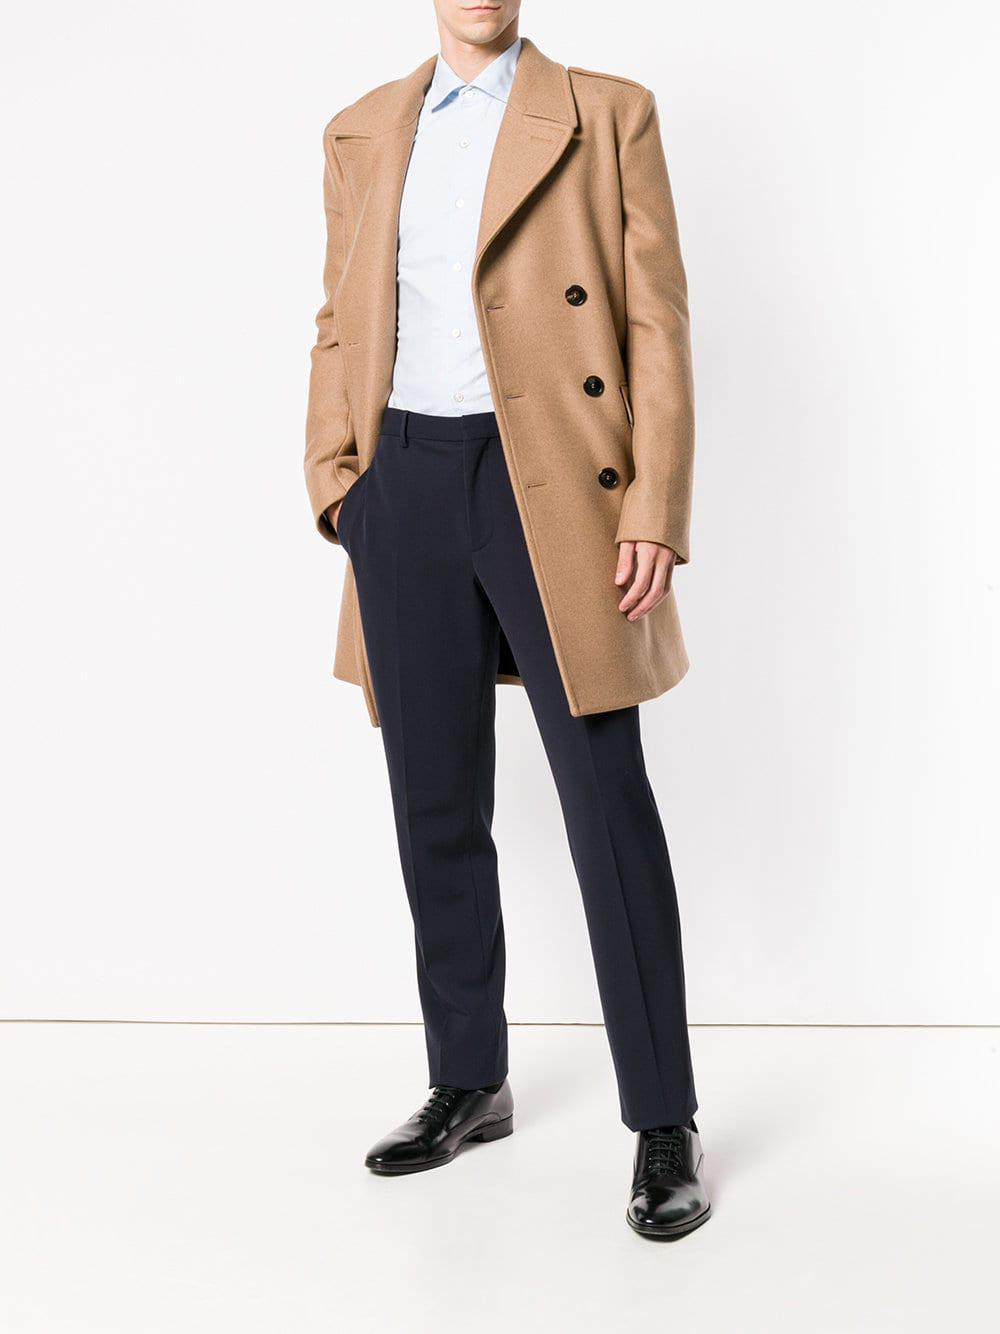 5d1ef05e3f5d6 Lyst - Saint Laurent Double Breasted Coat in Natural for Men